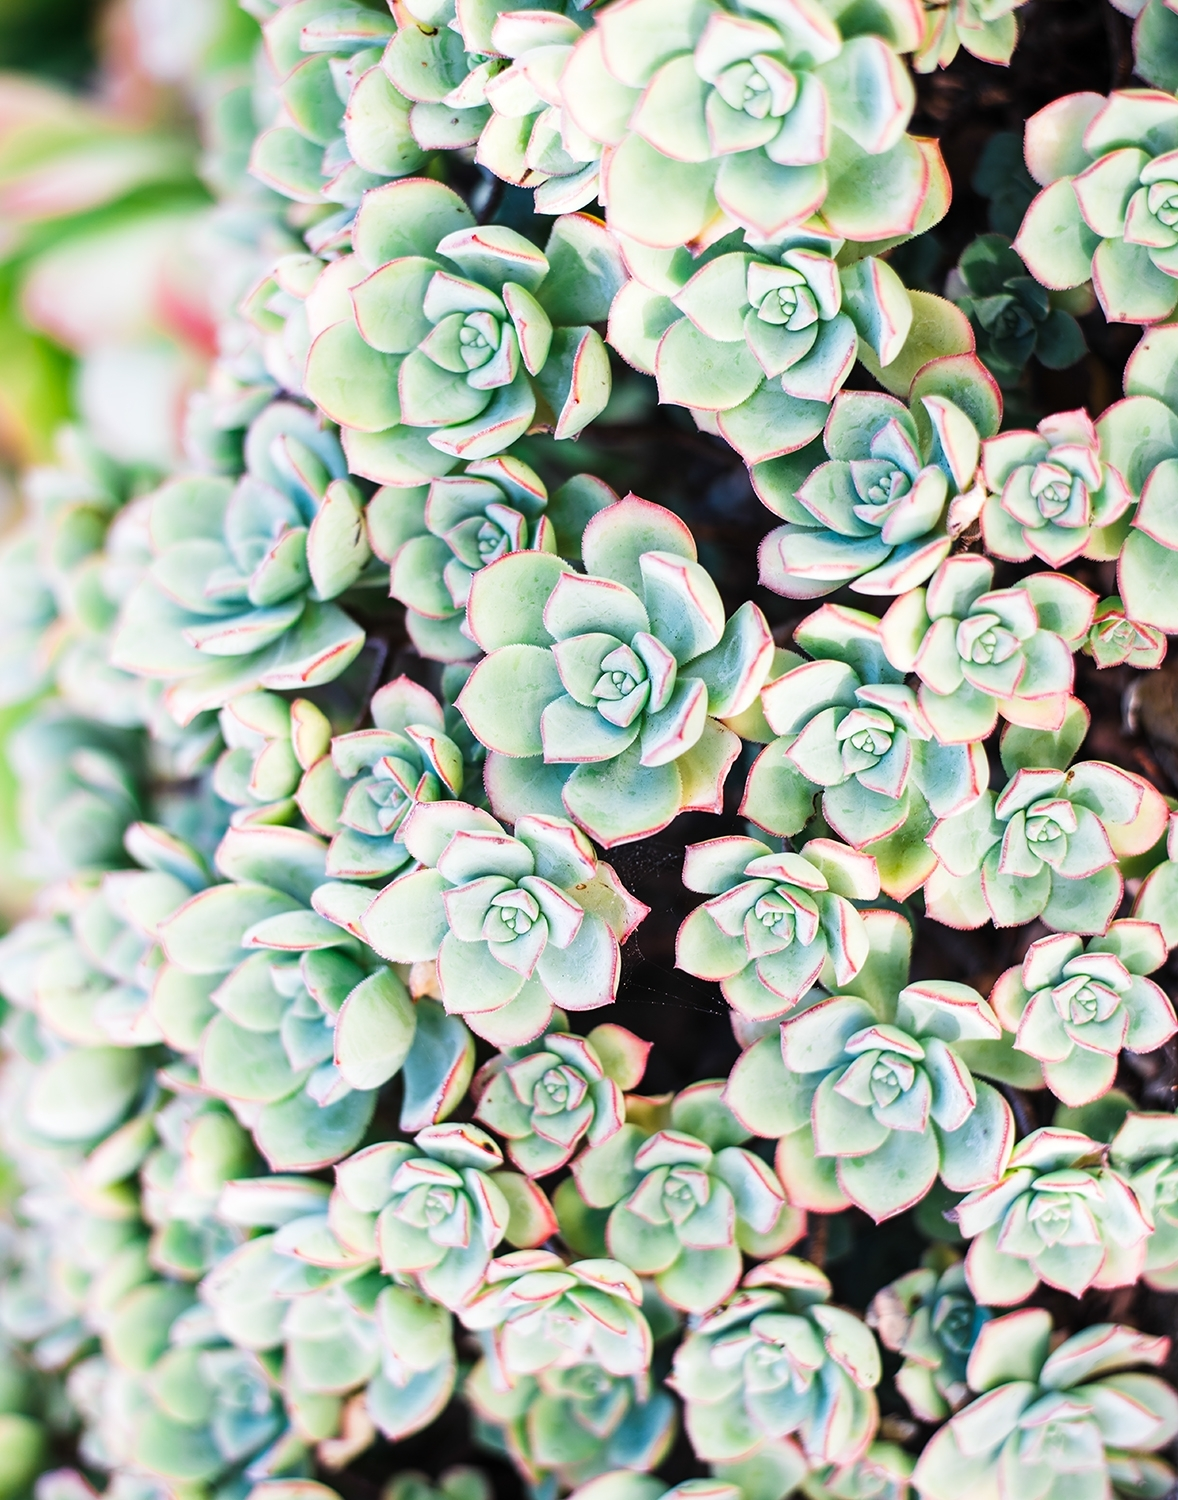 Succulent Wall Art | Home Decor Photography Print | Whitney Finuf Throughout Most Recent Succulent Wall Art (View 11 of 20)